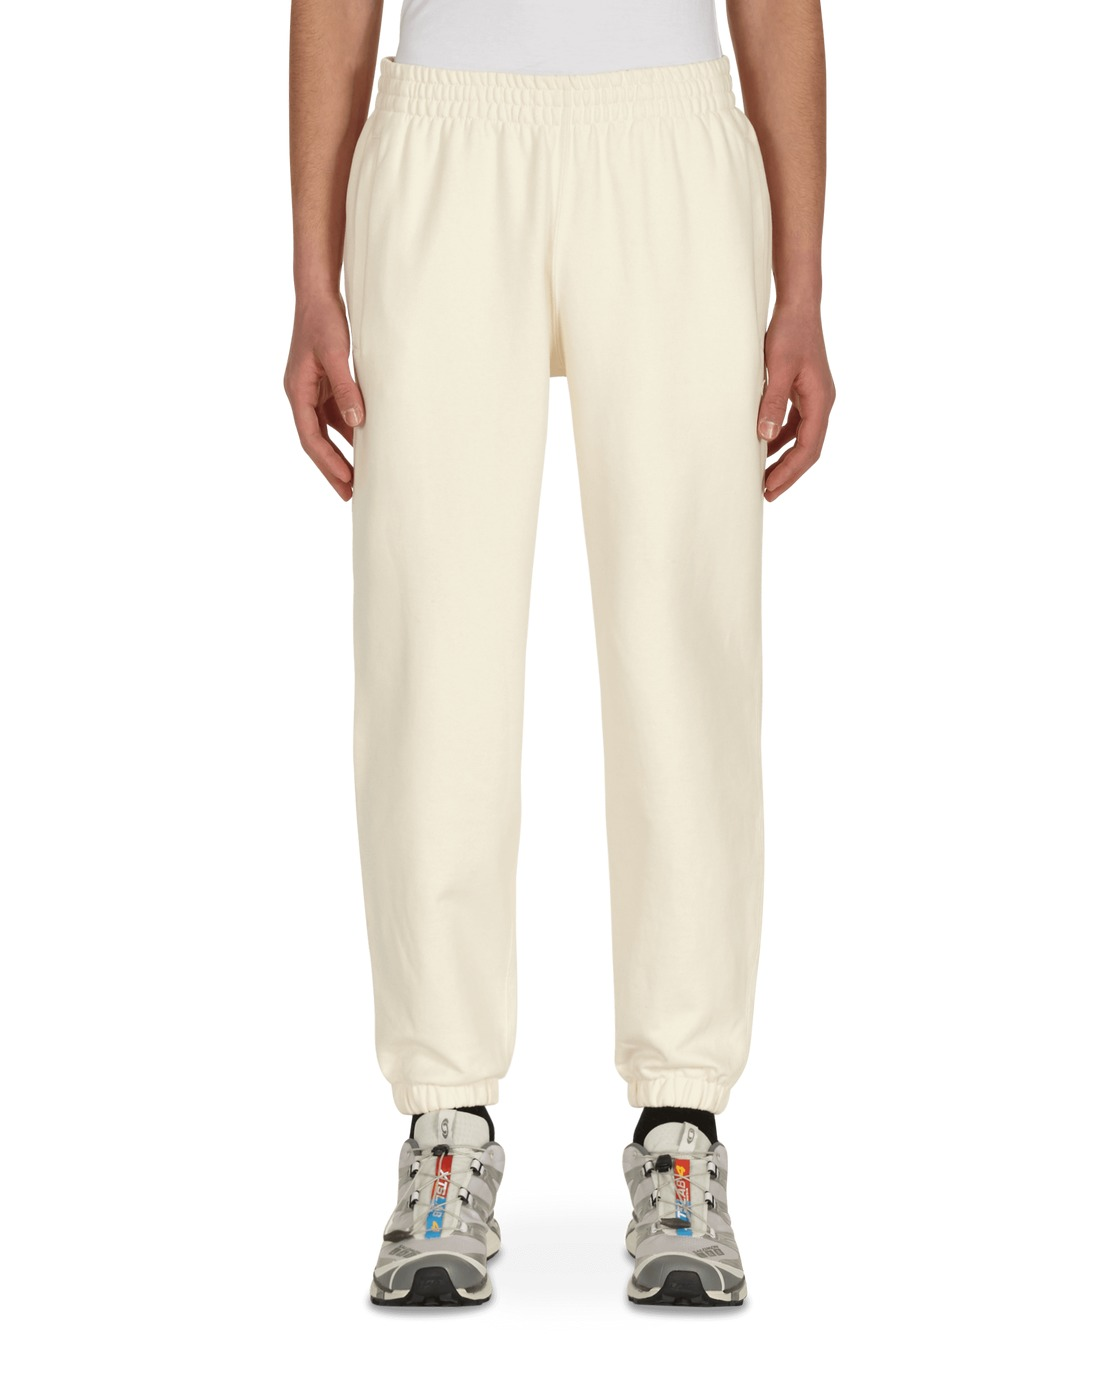 Adidas Originals Adicolor Premium Sweatpants Non Dyed